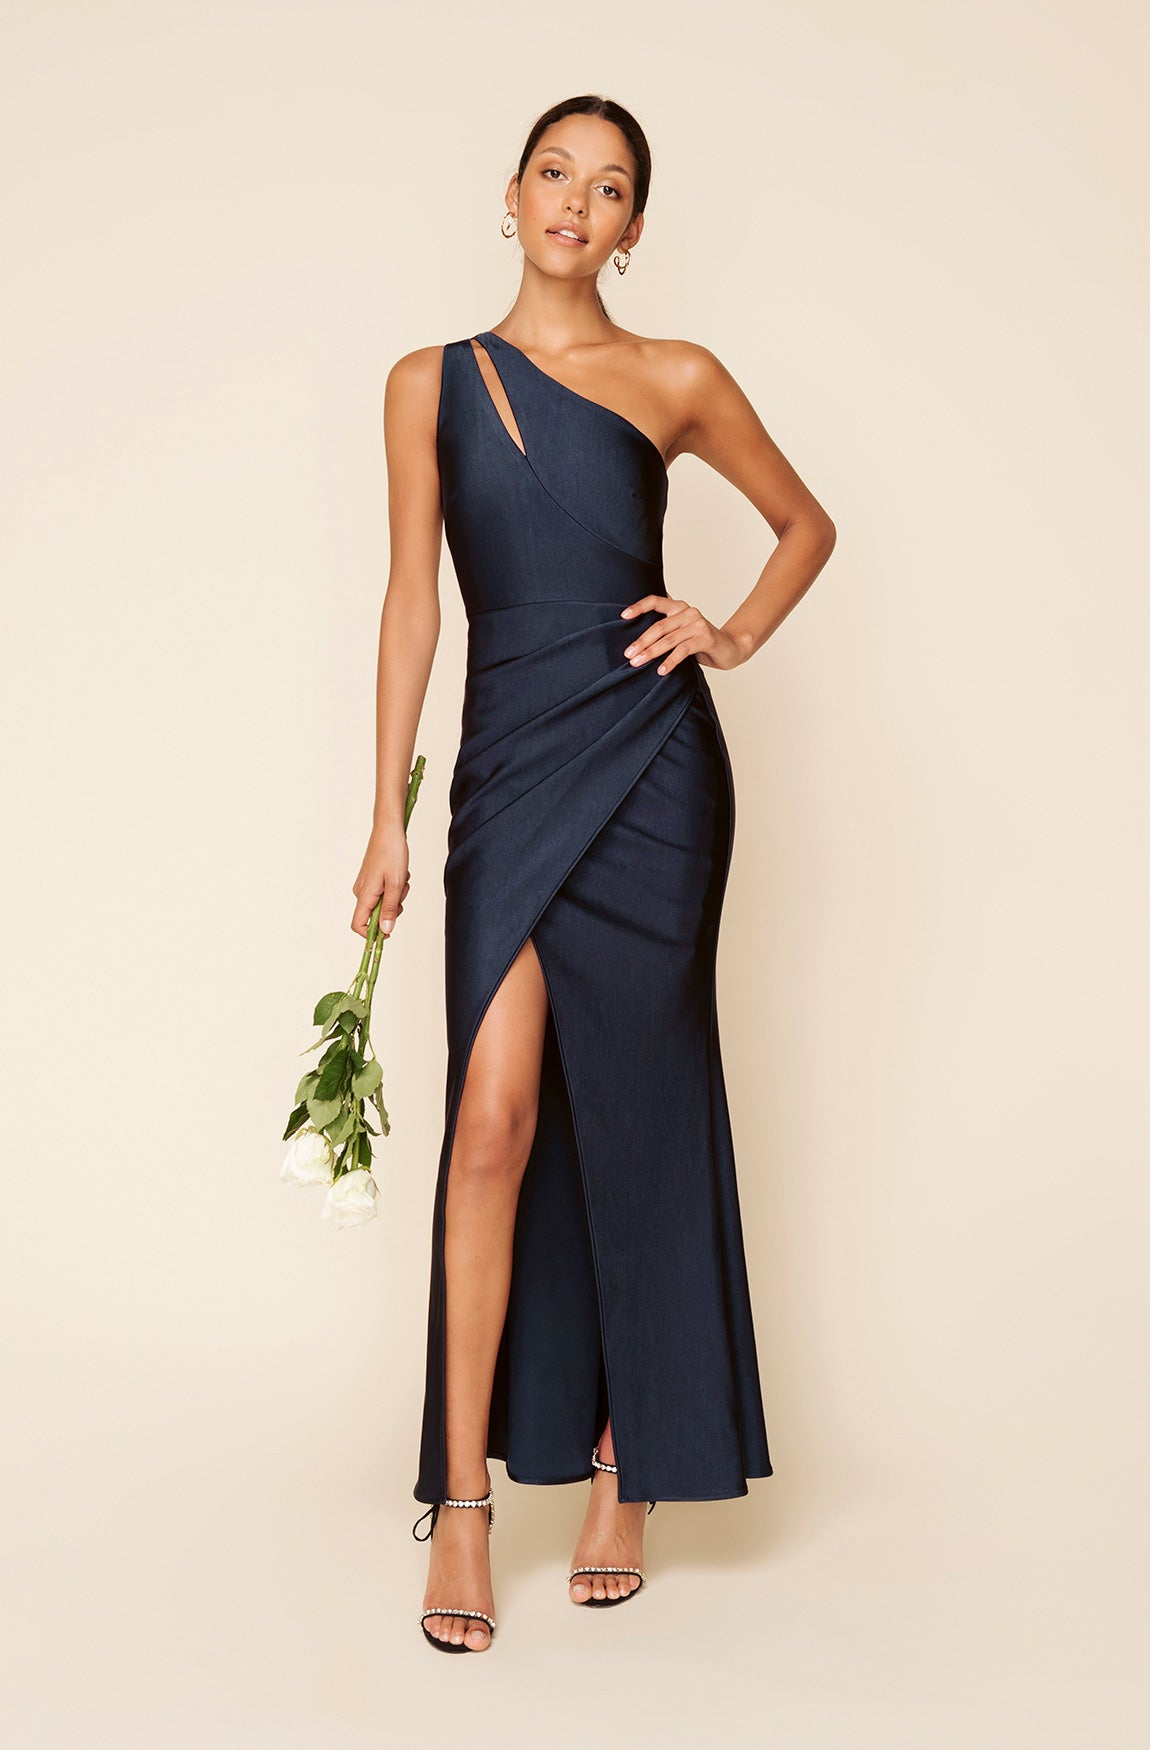 MATRIX FORMAL GOWN